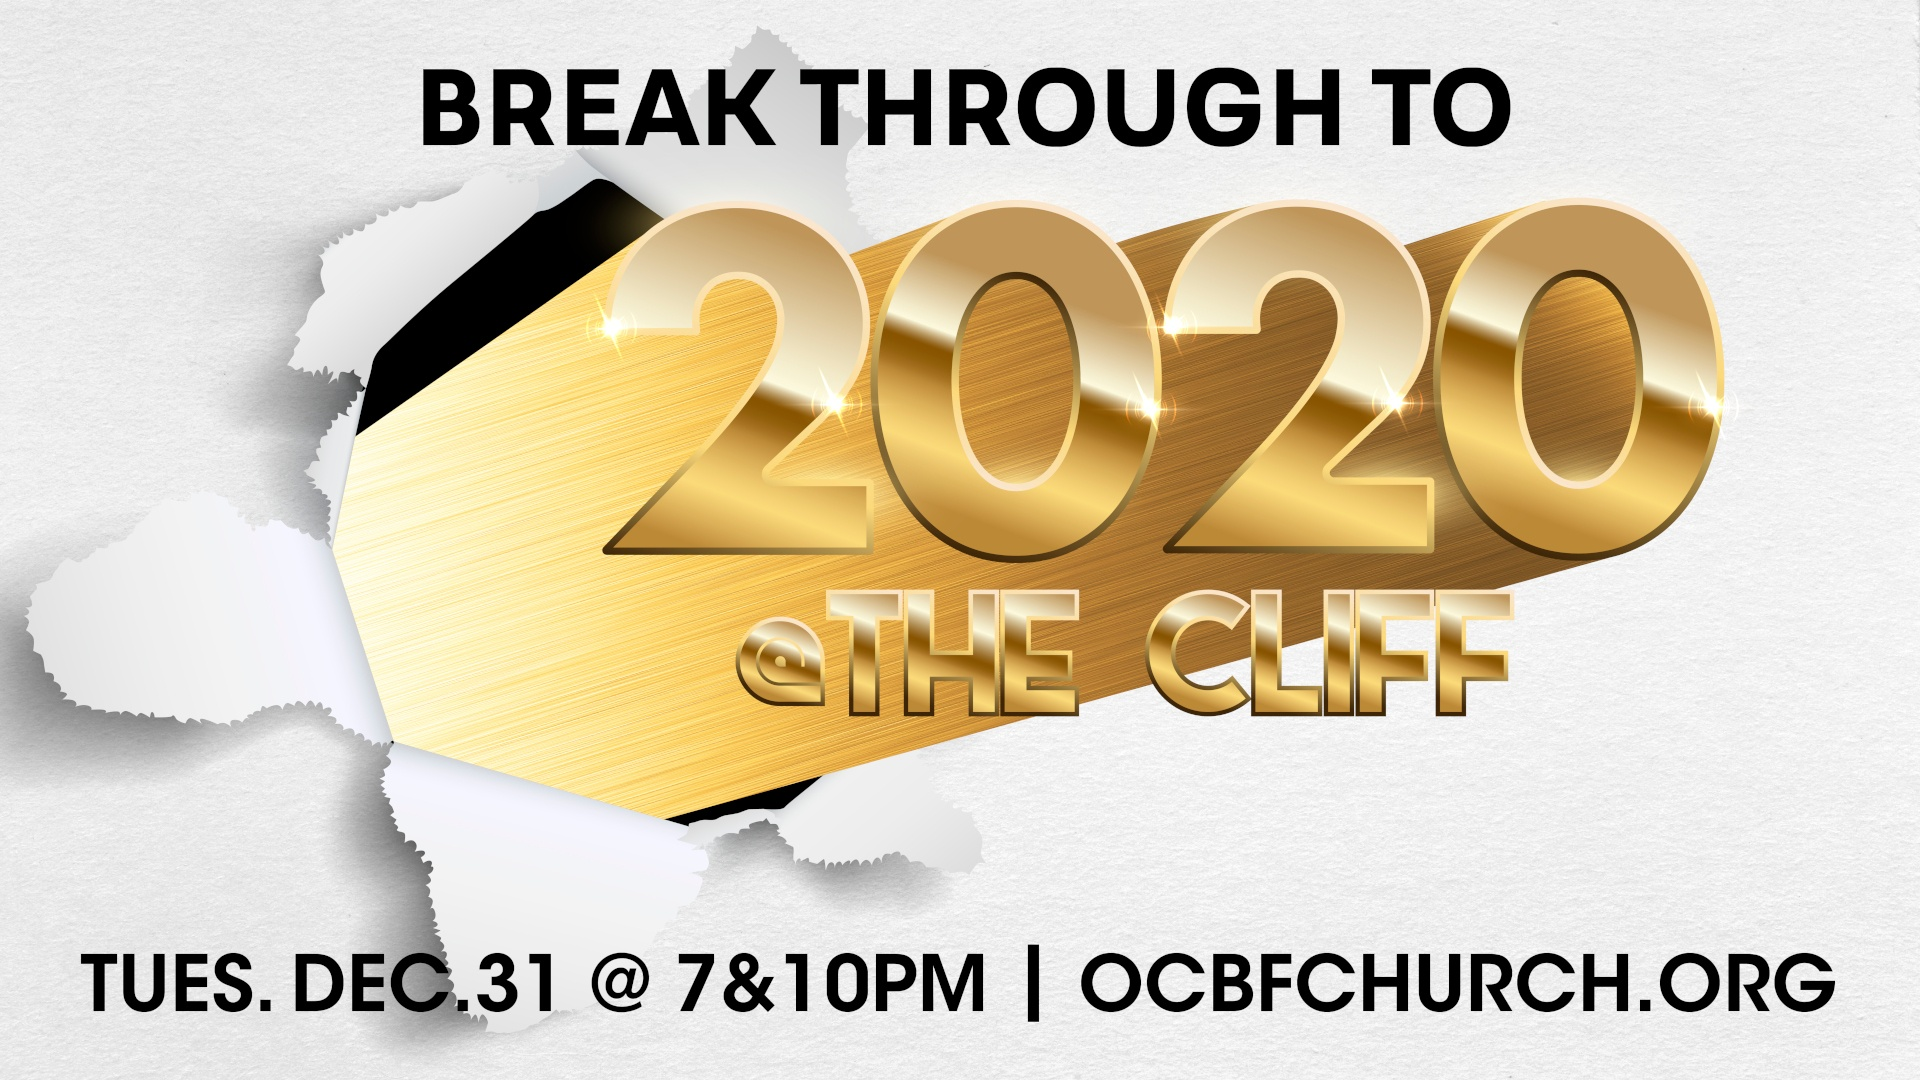 Break through to 2020 at The Cliff